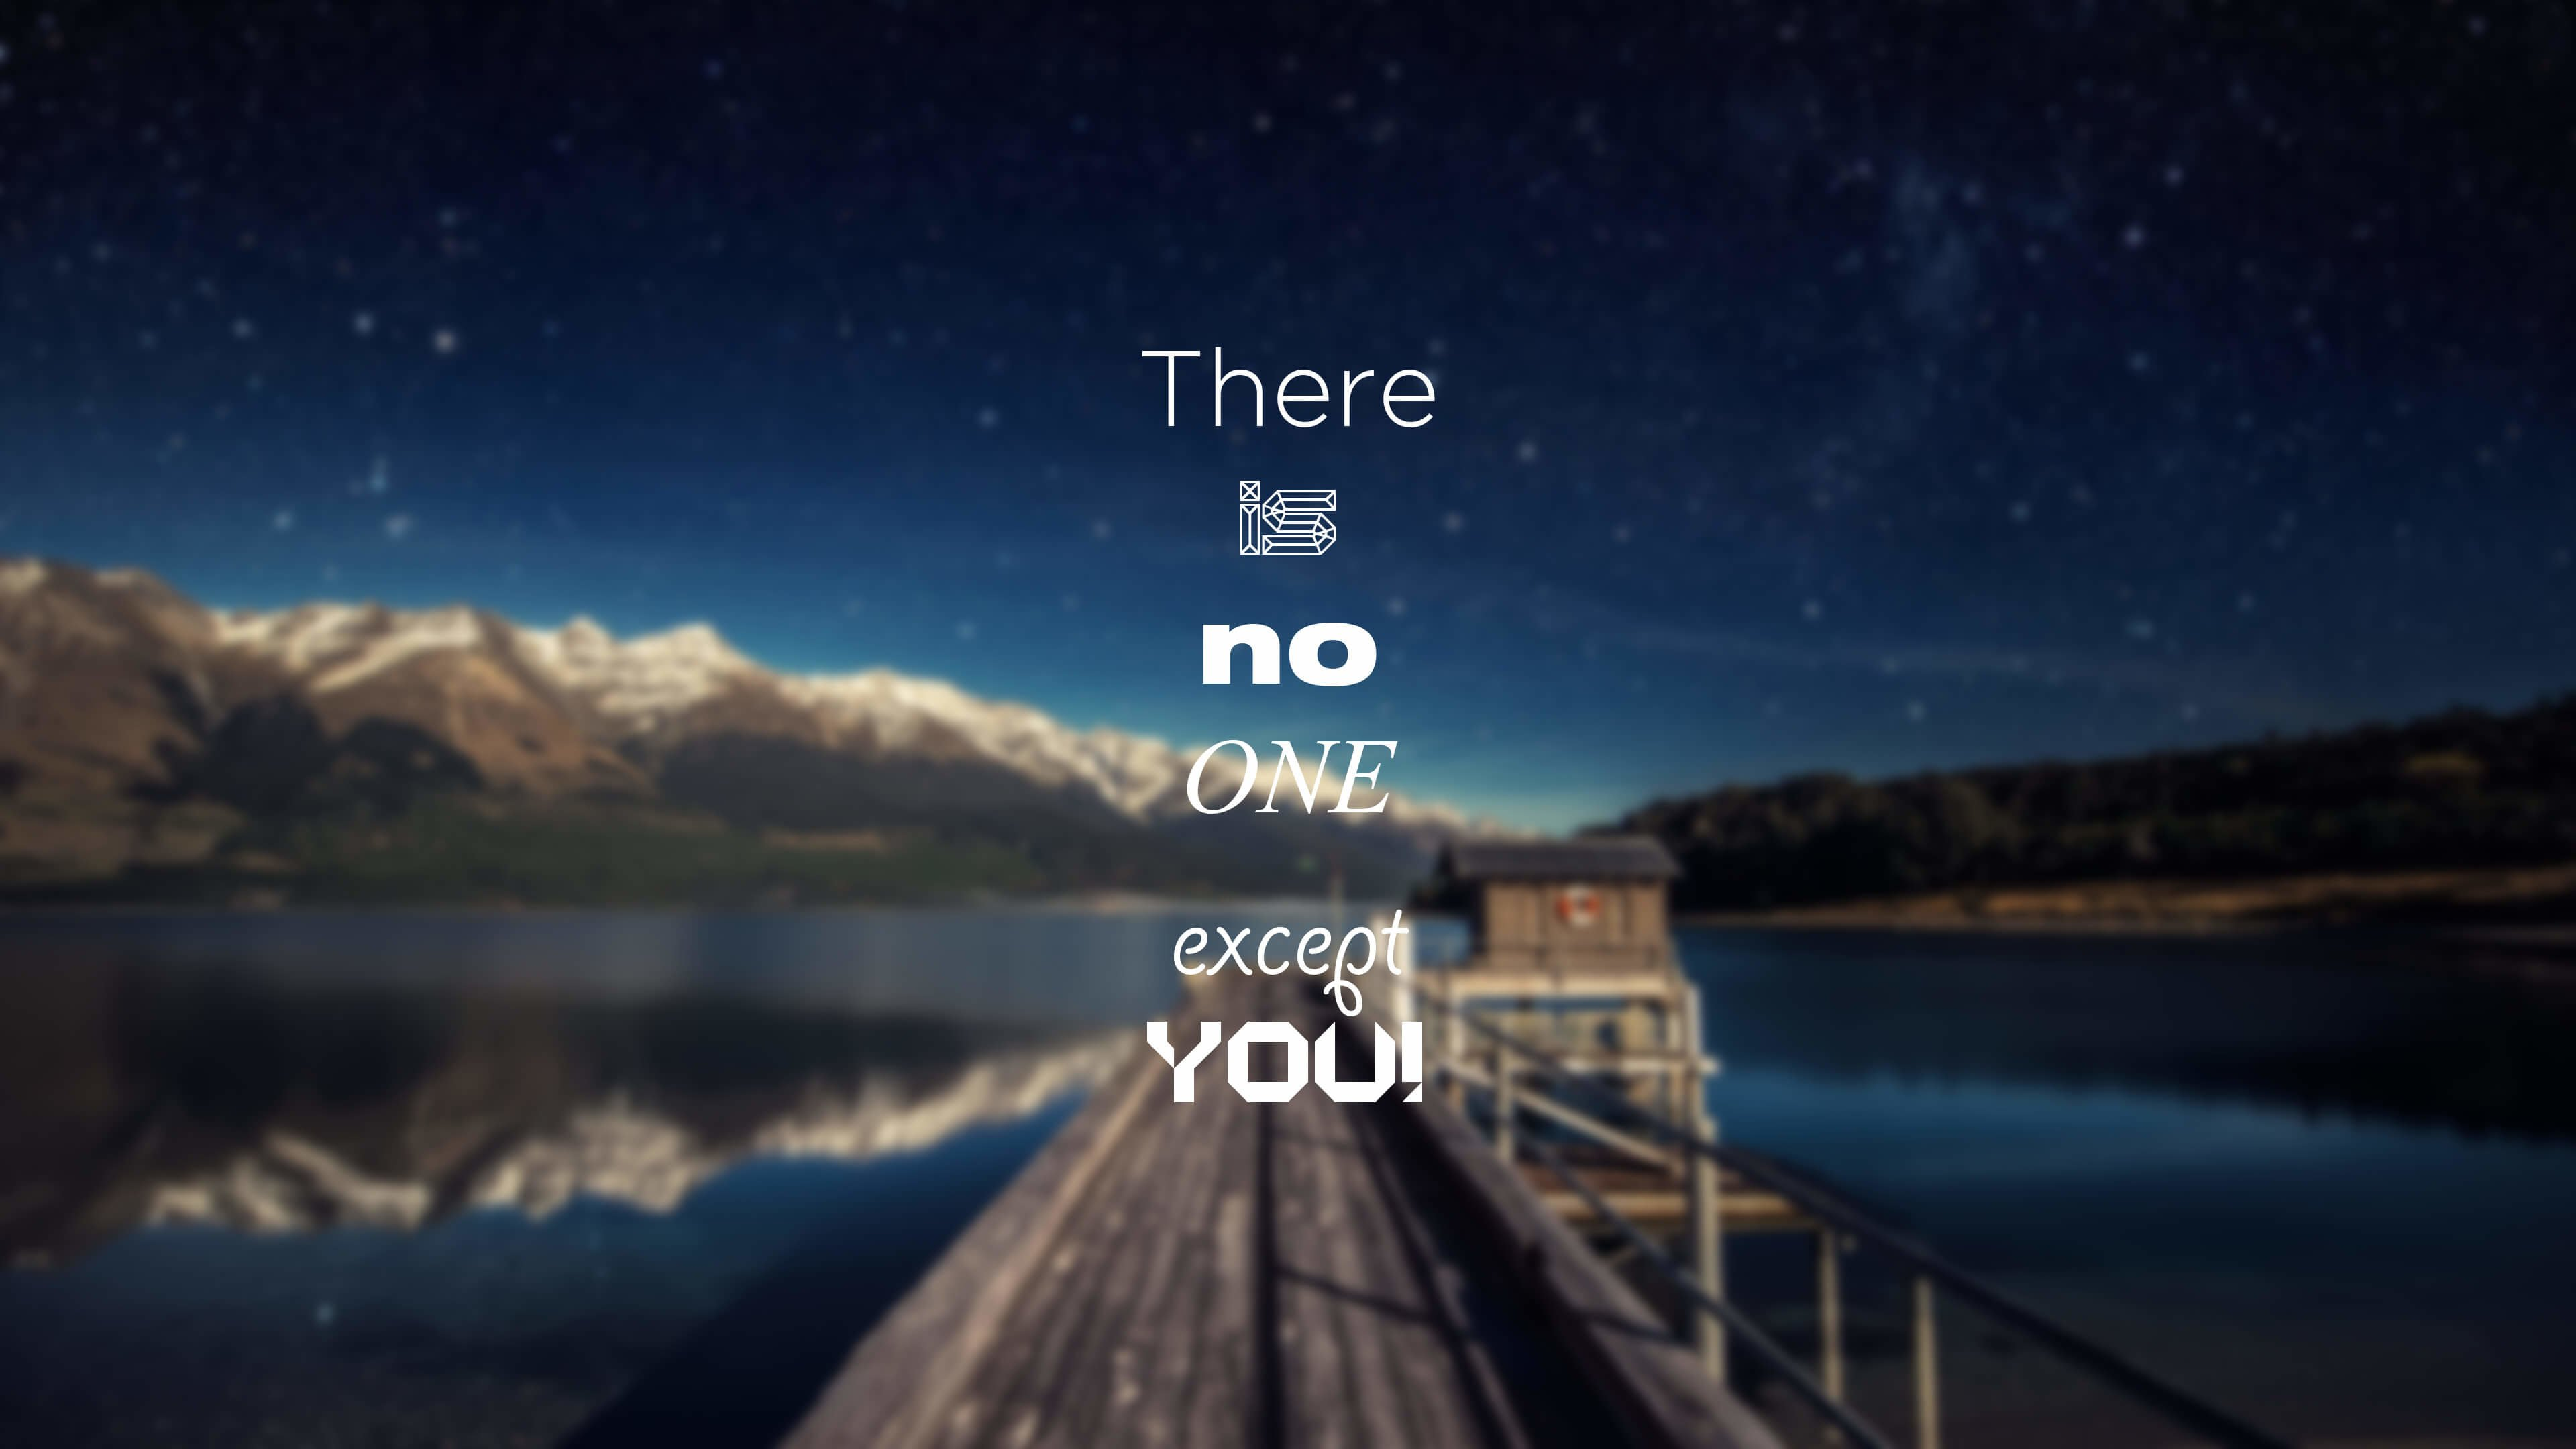 There Is No One Except You Wallpaper for Desktop 4K 3840x2160